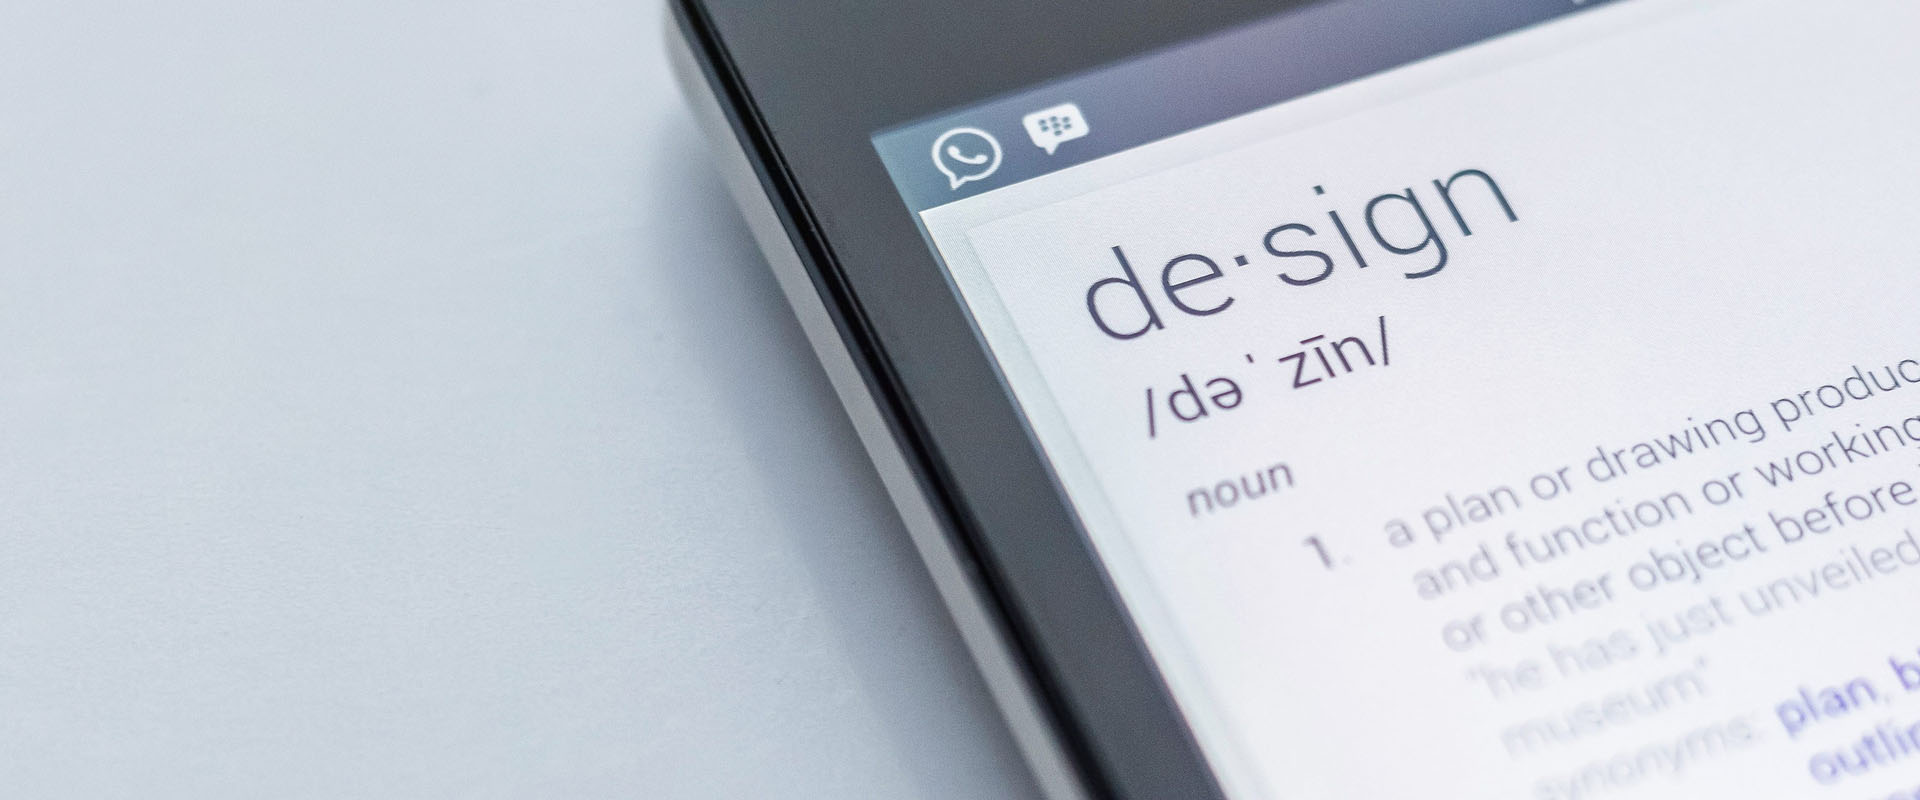 Phone screen displaying the definition of design